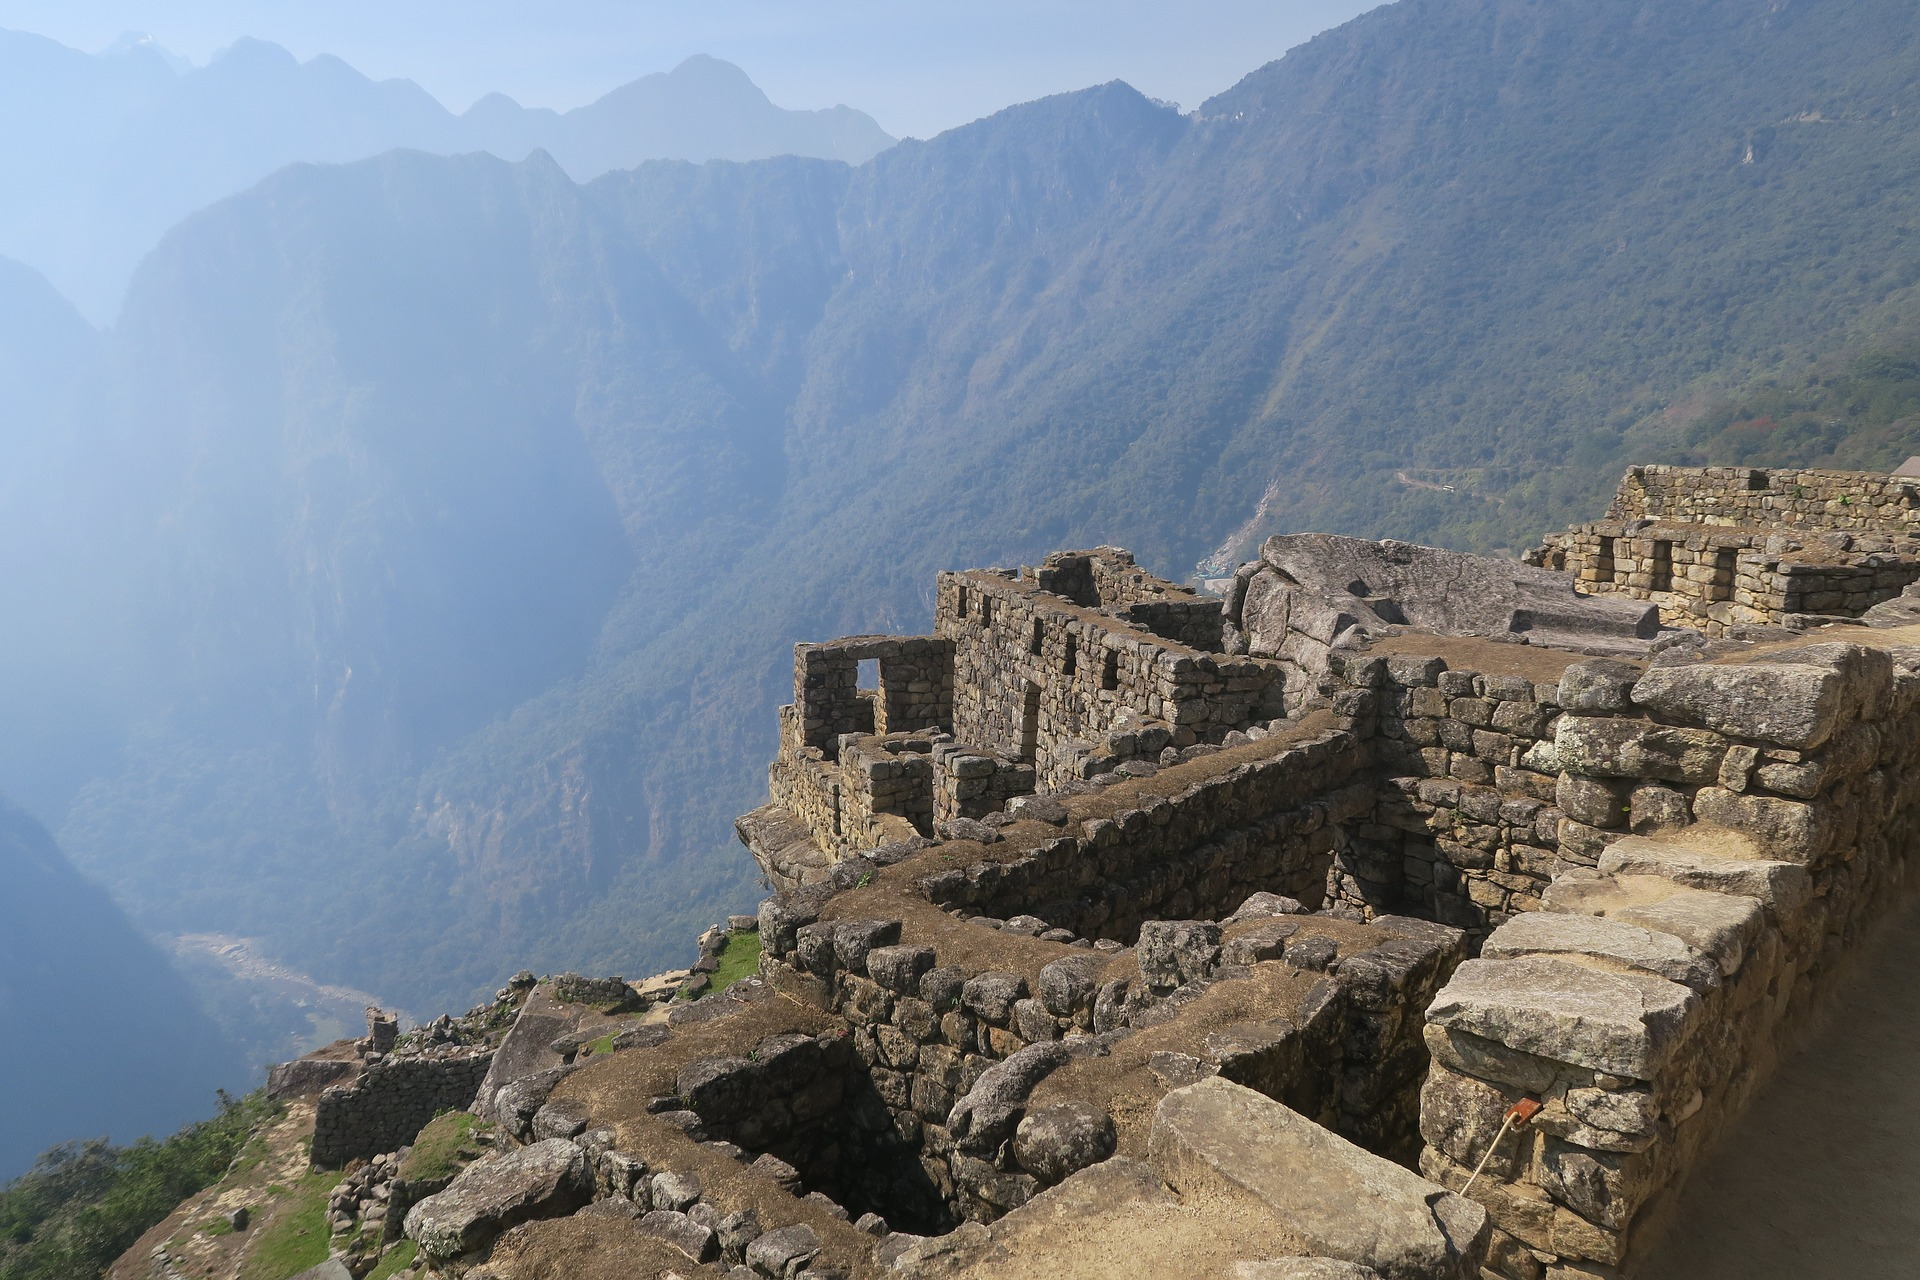 This image shows the steep terrain from a road below to Machu Picchu.